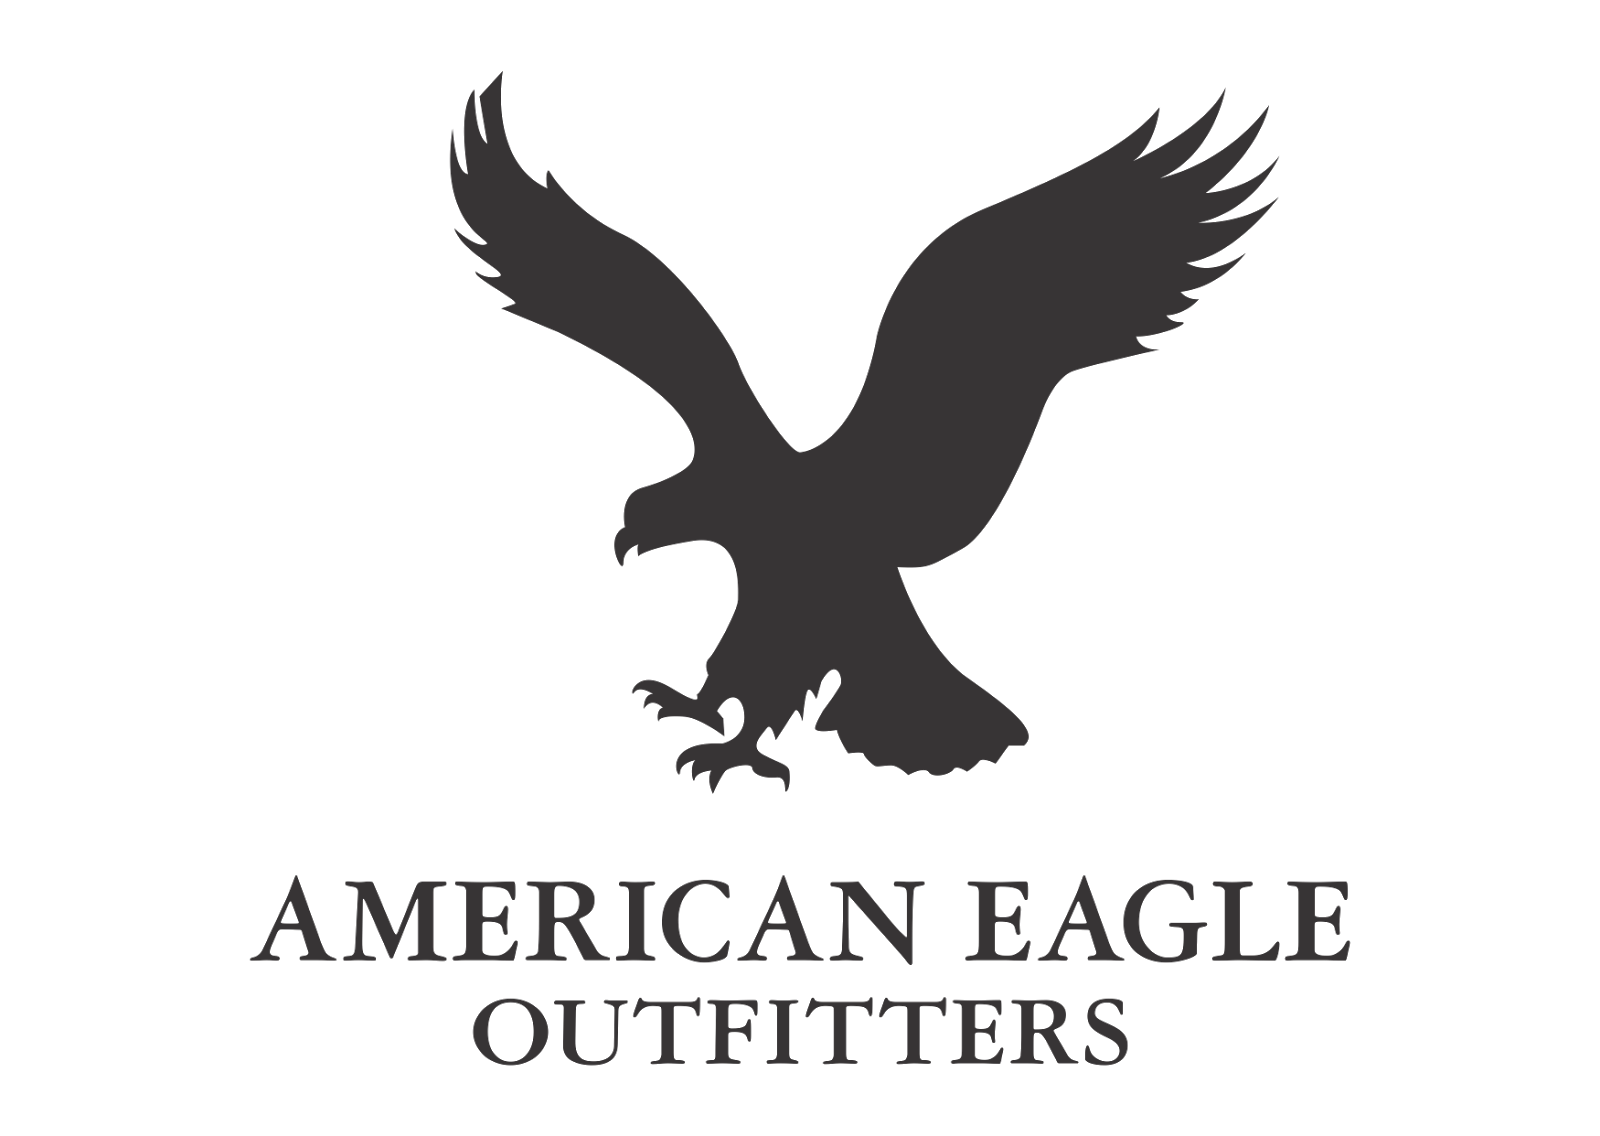 American eagle logo png. Uae online clothes shopping